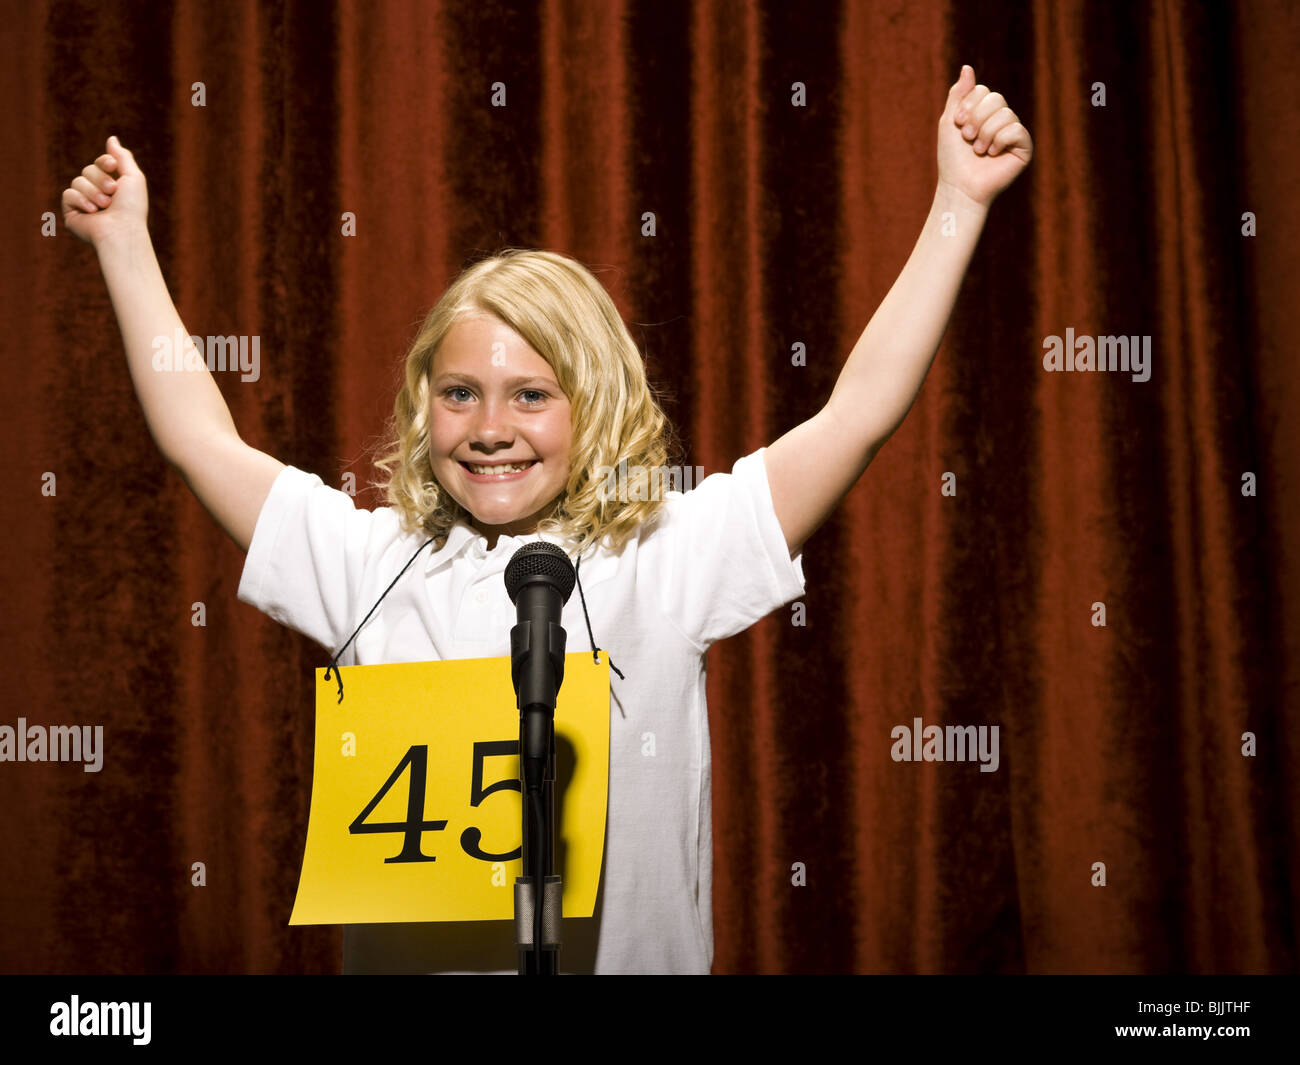 Girl contestant standing at microphone cheering - Stock Image